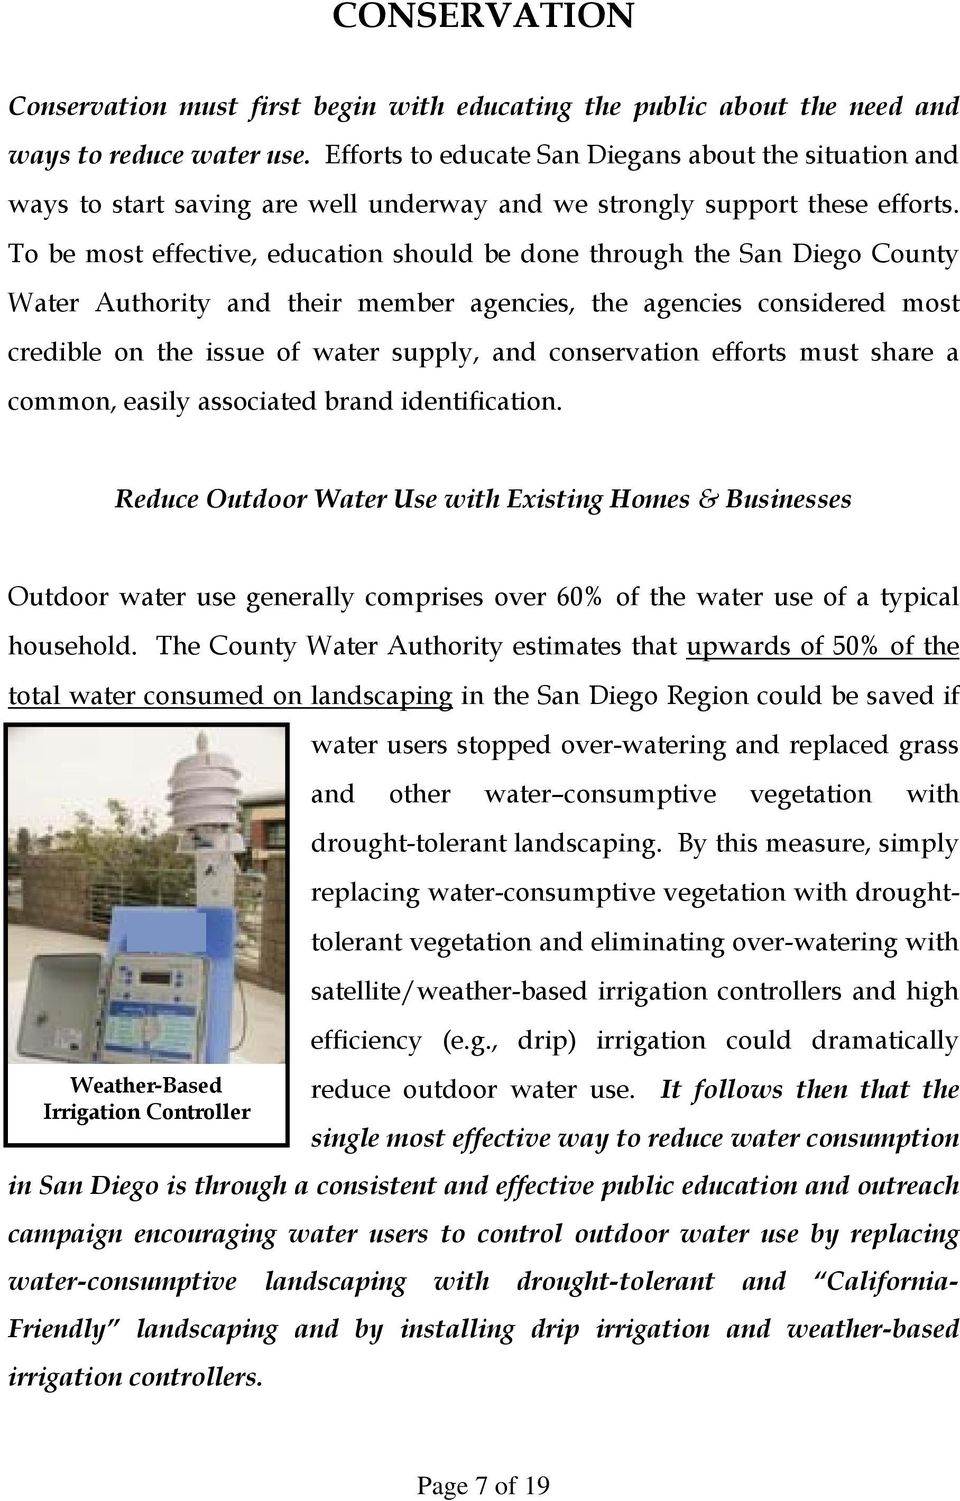 To be most effective, education should be done through the San Diego County Water Authority and their member agencies, the agencies considered most credible on the issue of water supply, and